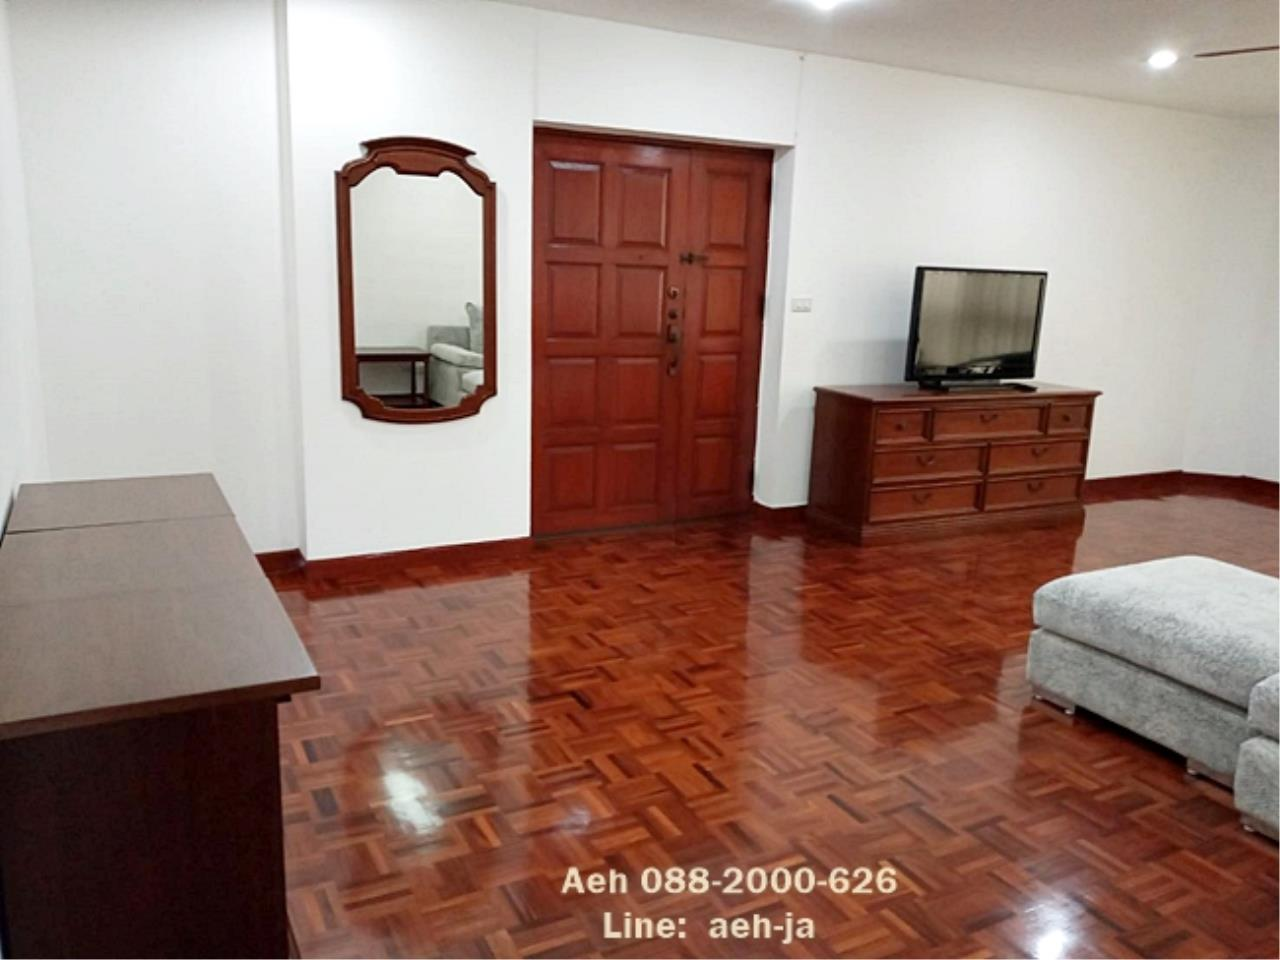 Agent - Aeh Pattanapaisal Agency's Pet Friendly!! Tubtim Mansion, 2 bedrooms for rent, BTS Phrom Phong THB 45,000/month 2